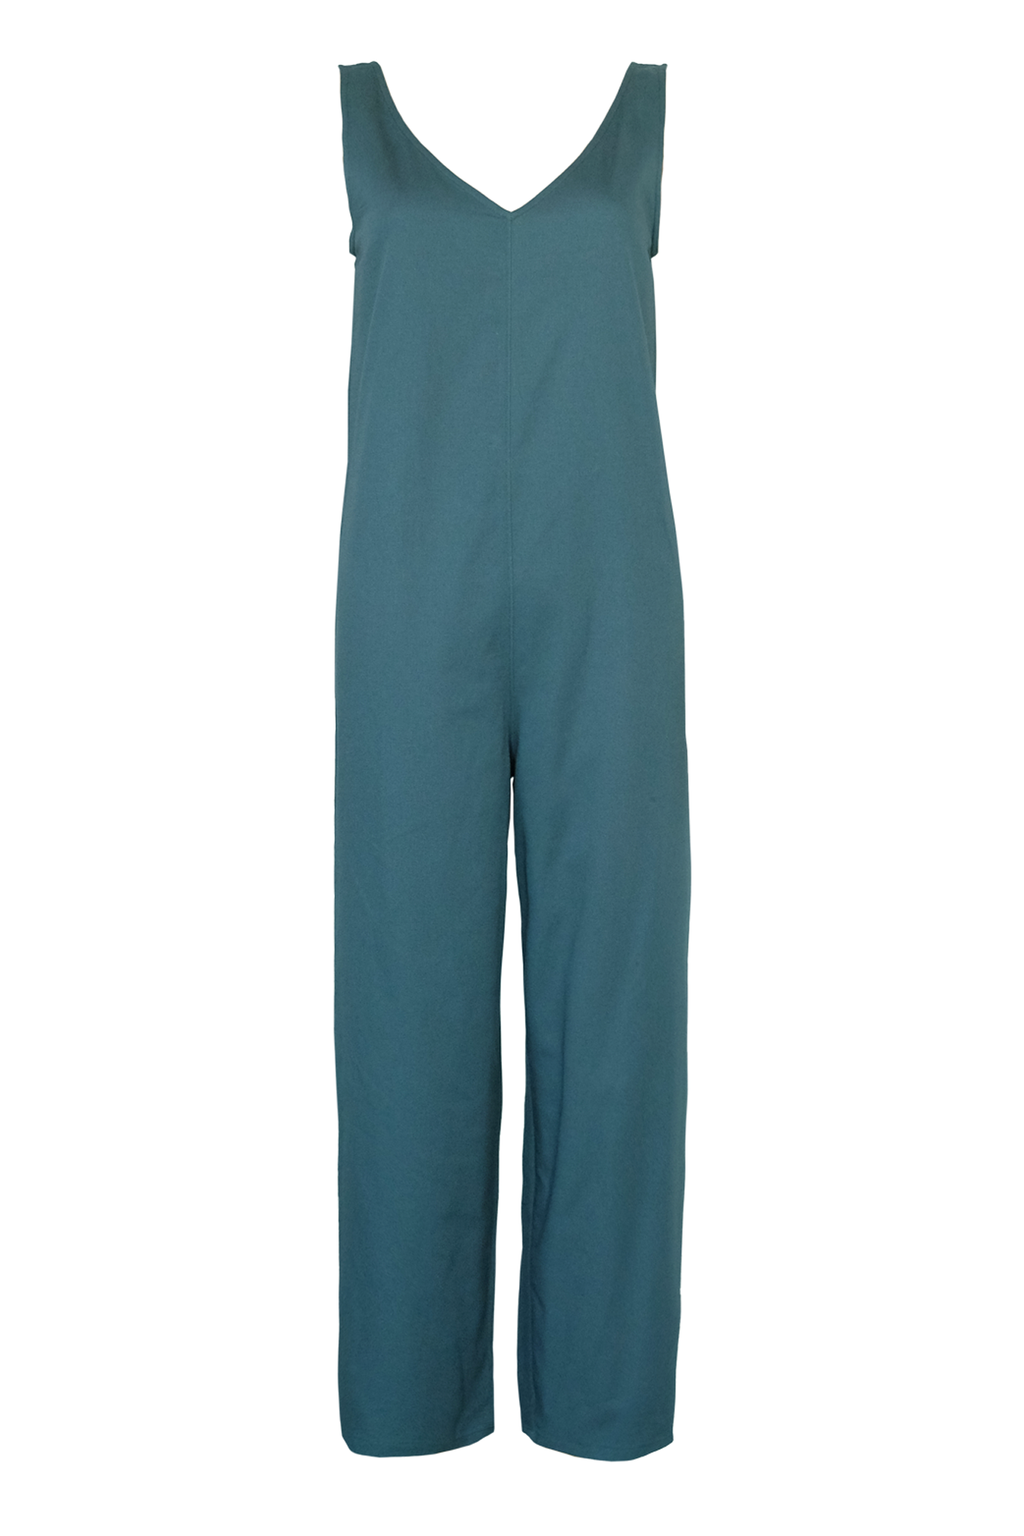 Cotton Twill Jumpsuit - Teal